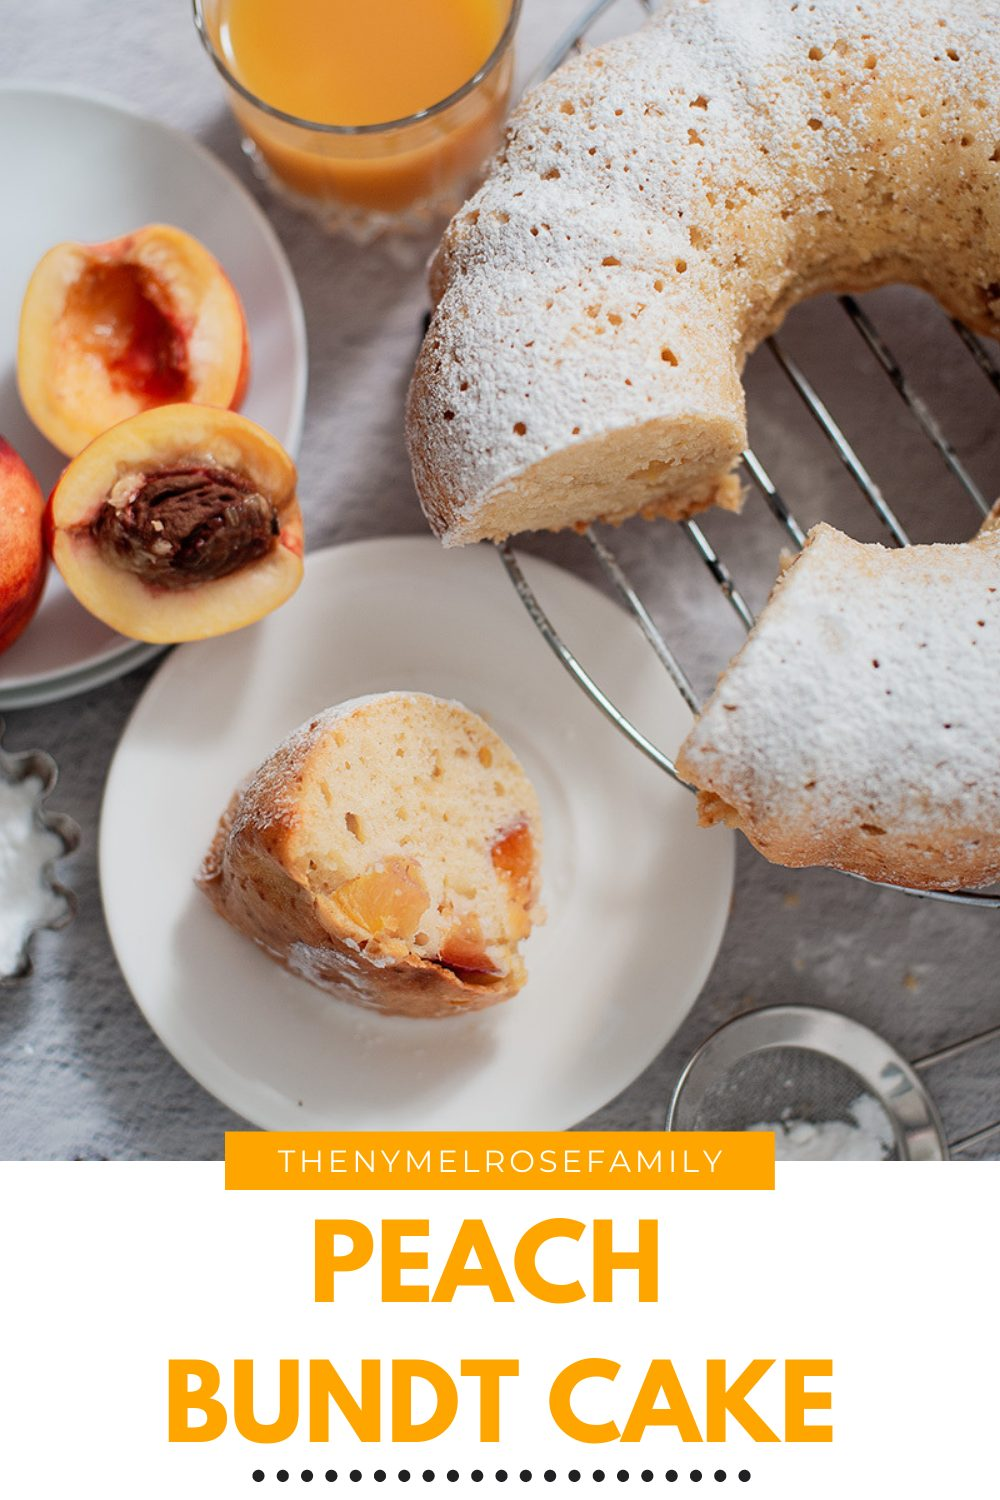 This beautiful peach bundt cake is a perfect summertime dessert. Easy to make and loaded with goodness of fresh peaches. #peachbundtcake #cakerecipes #summertime #nymelrosefamily via @jennymelrose